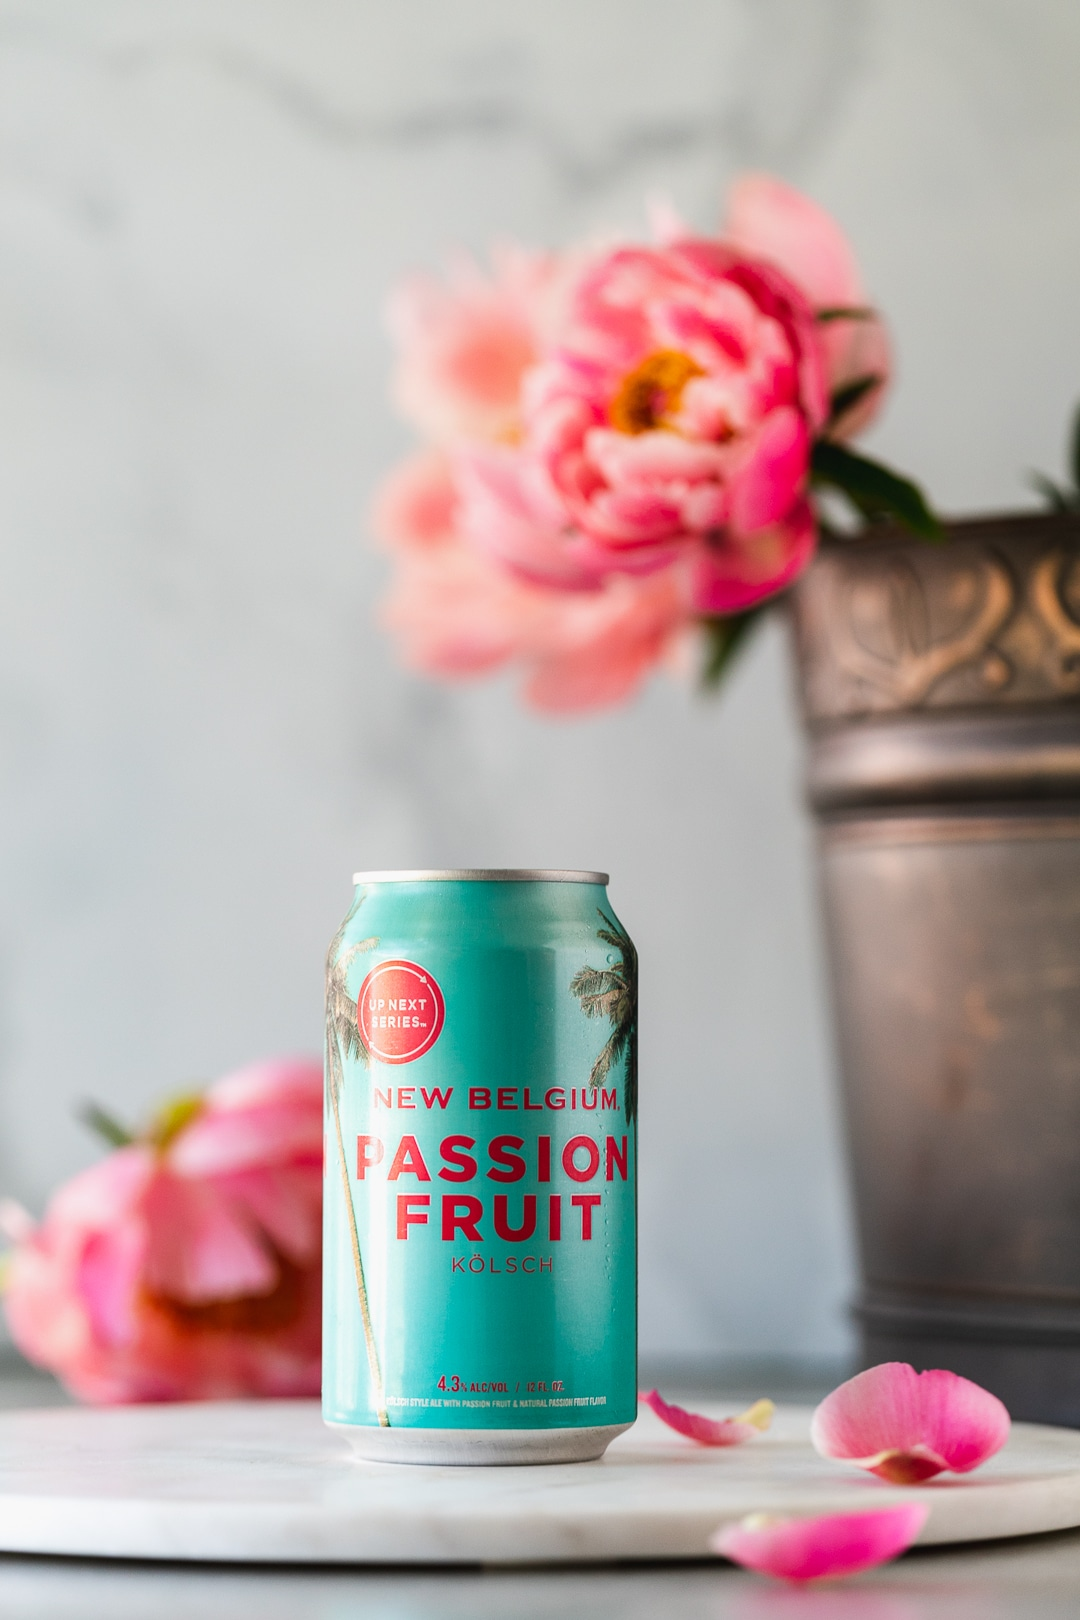 Colorful shot of a can of passionfruit beer with flowers in the background